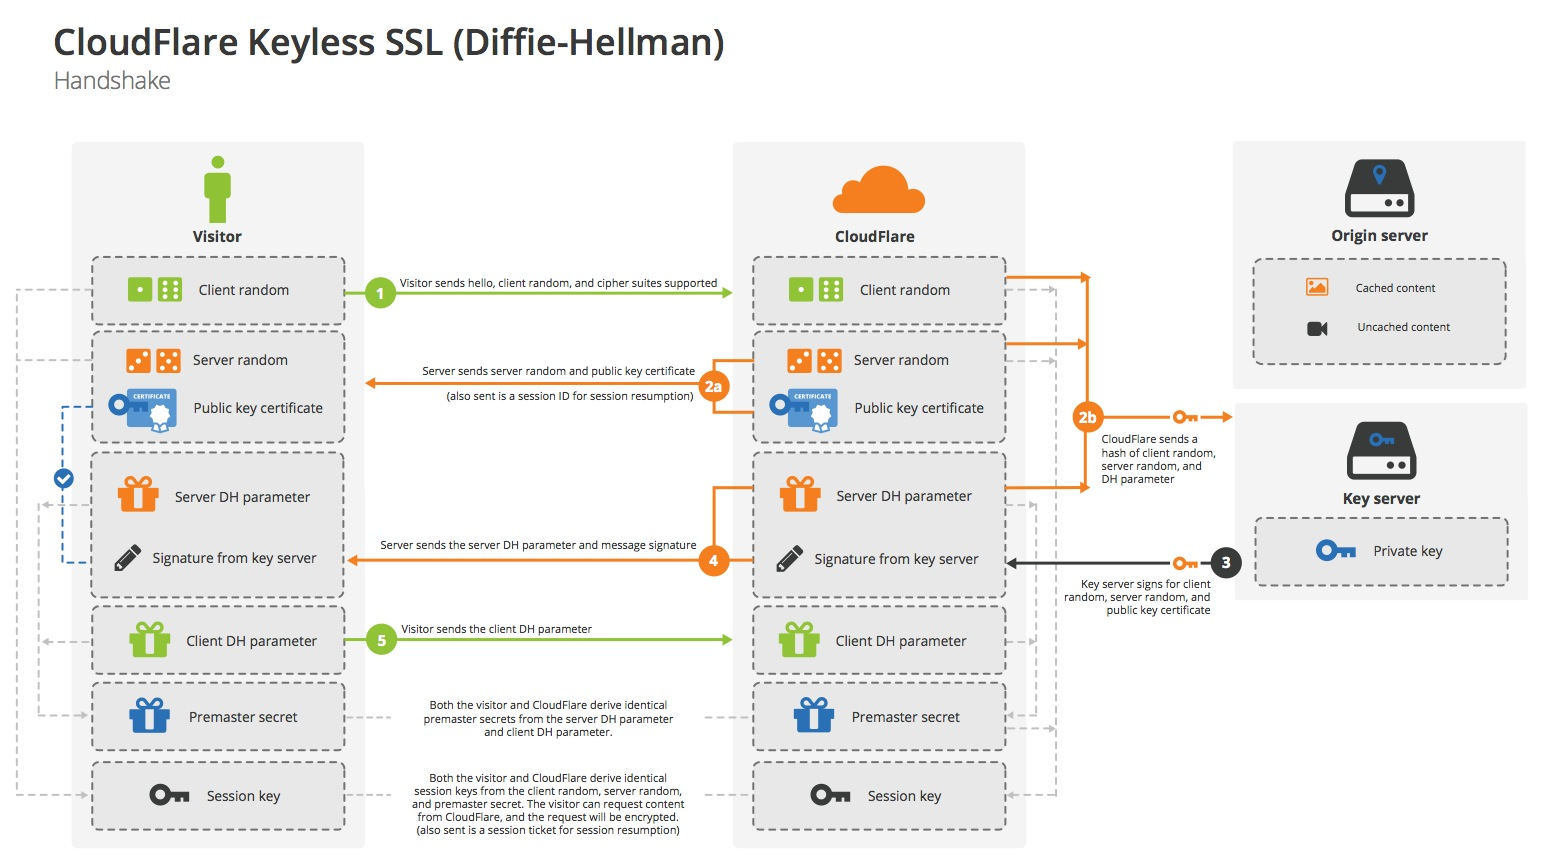 Keyless SSL handshake with Diffie-Hellman